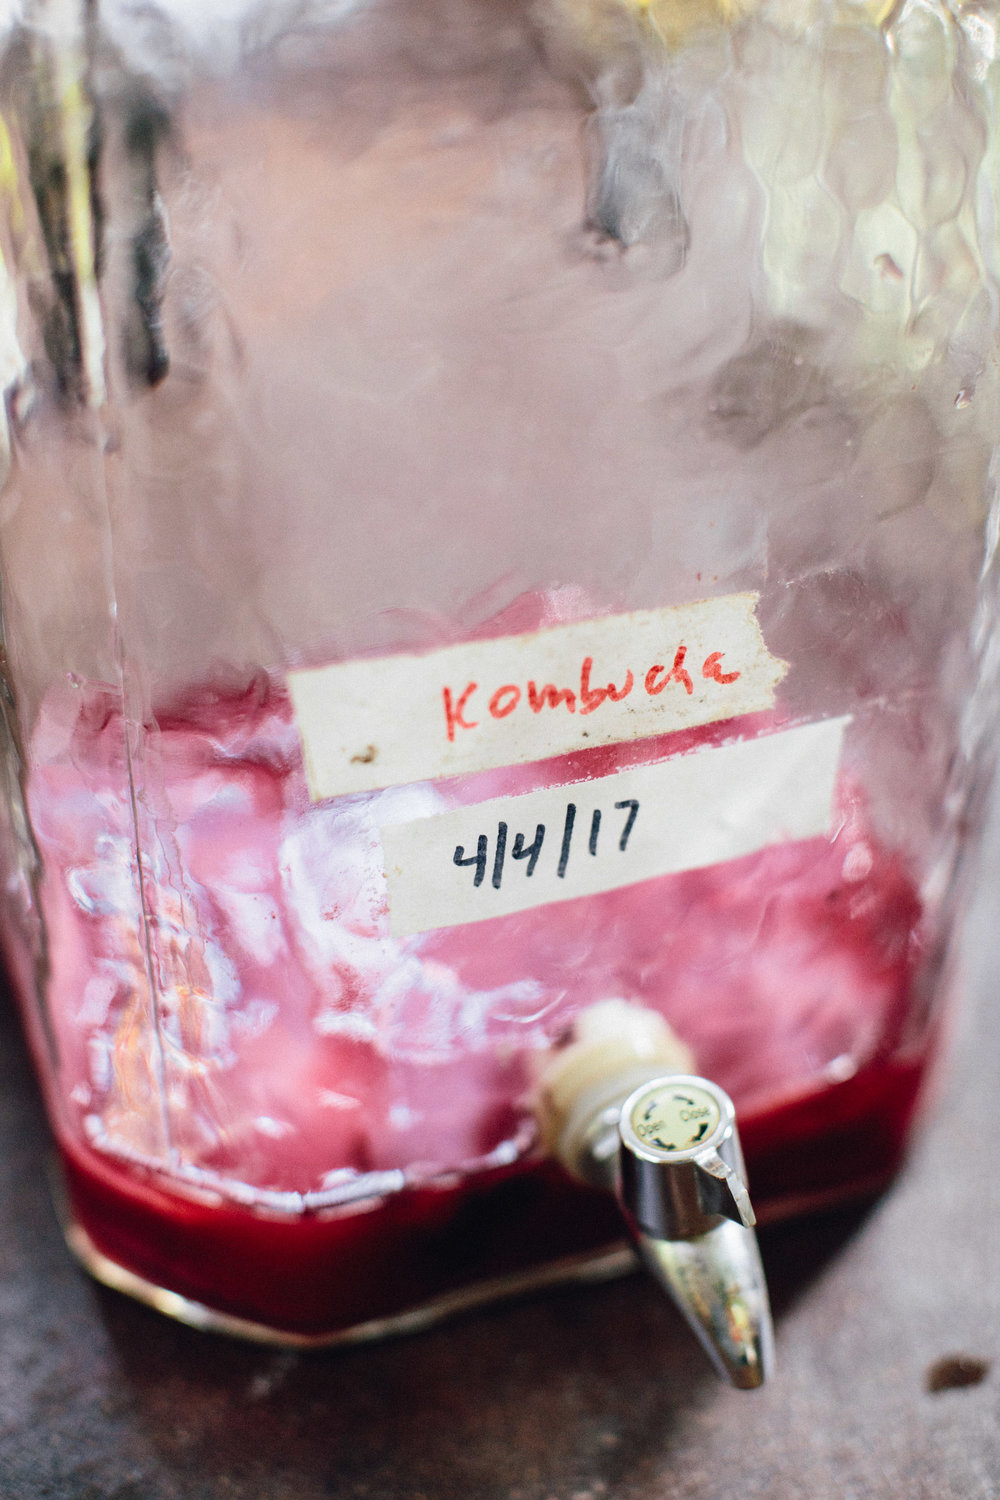 """Kombucha, after straining the previous batch. The """"mother"""" left in the jug, awaits the next fresh batch of hibiscus-steeped water & sugar."""